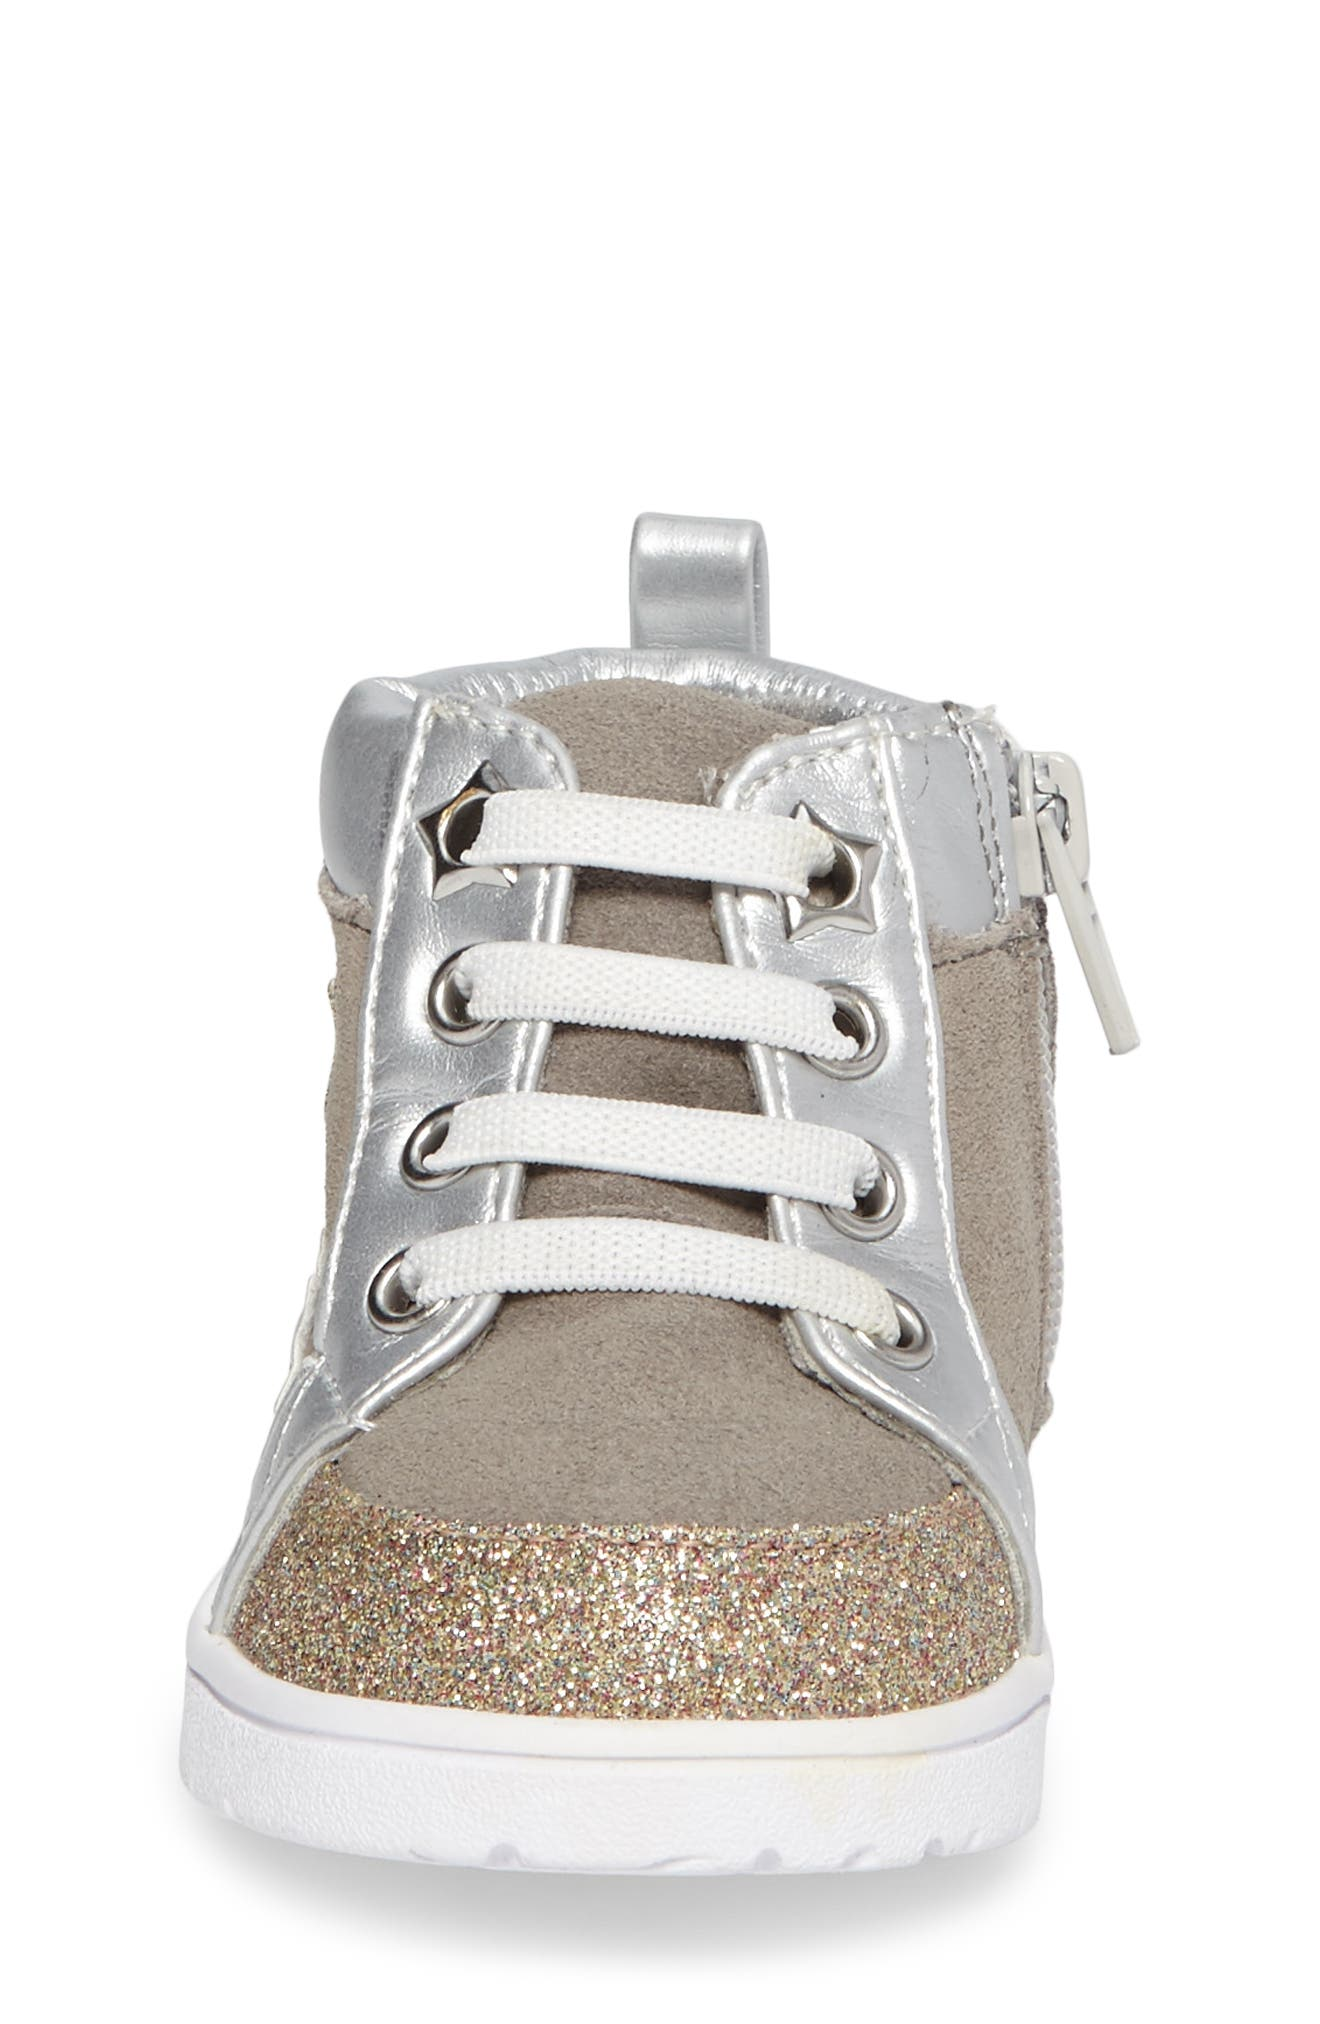 Diantha Star Appliqué High Top Sneaker,                             Alternate thumbnail 4, color,                             Grey Leather